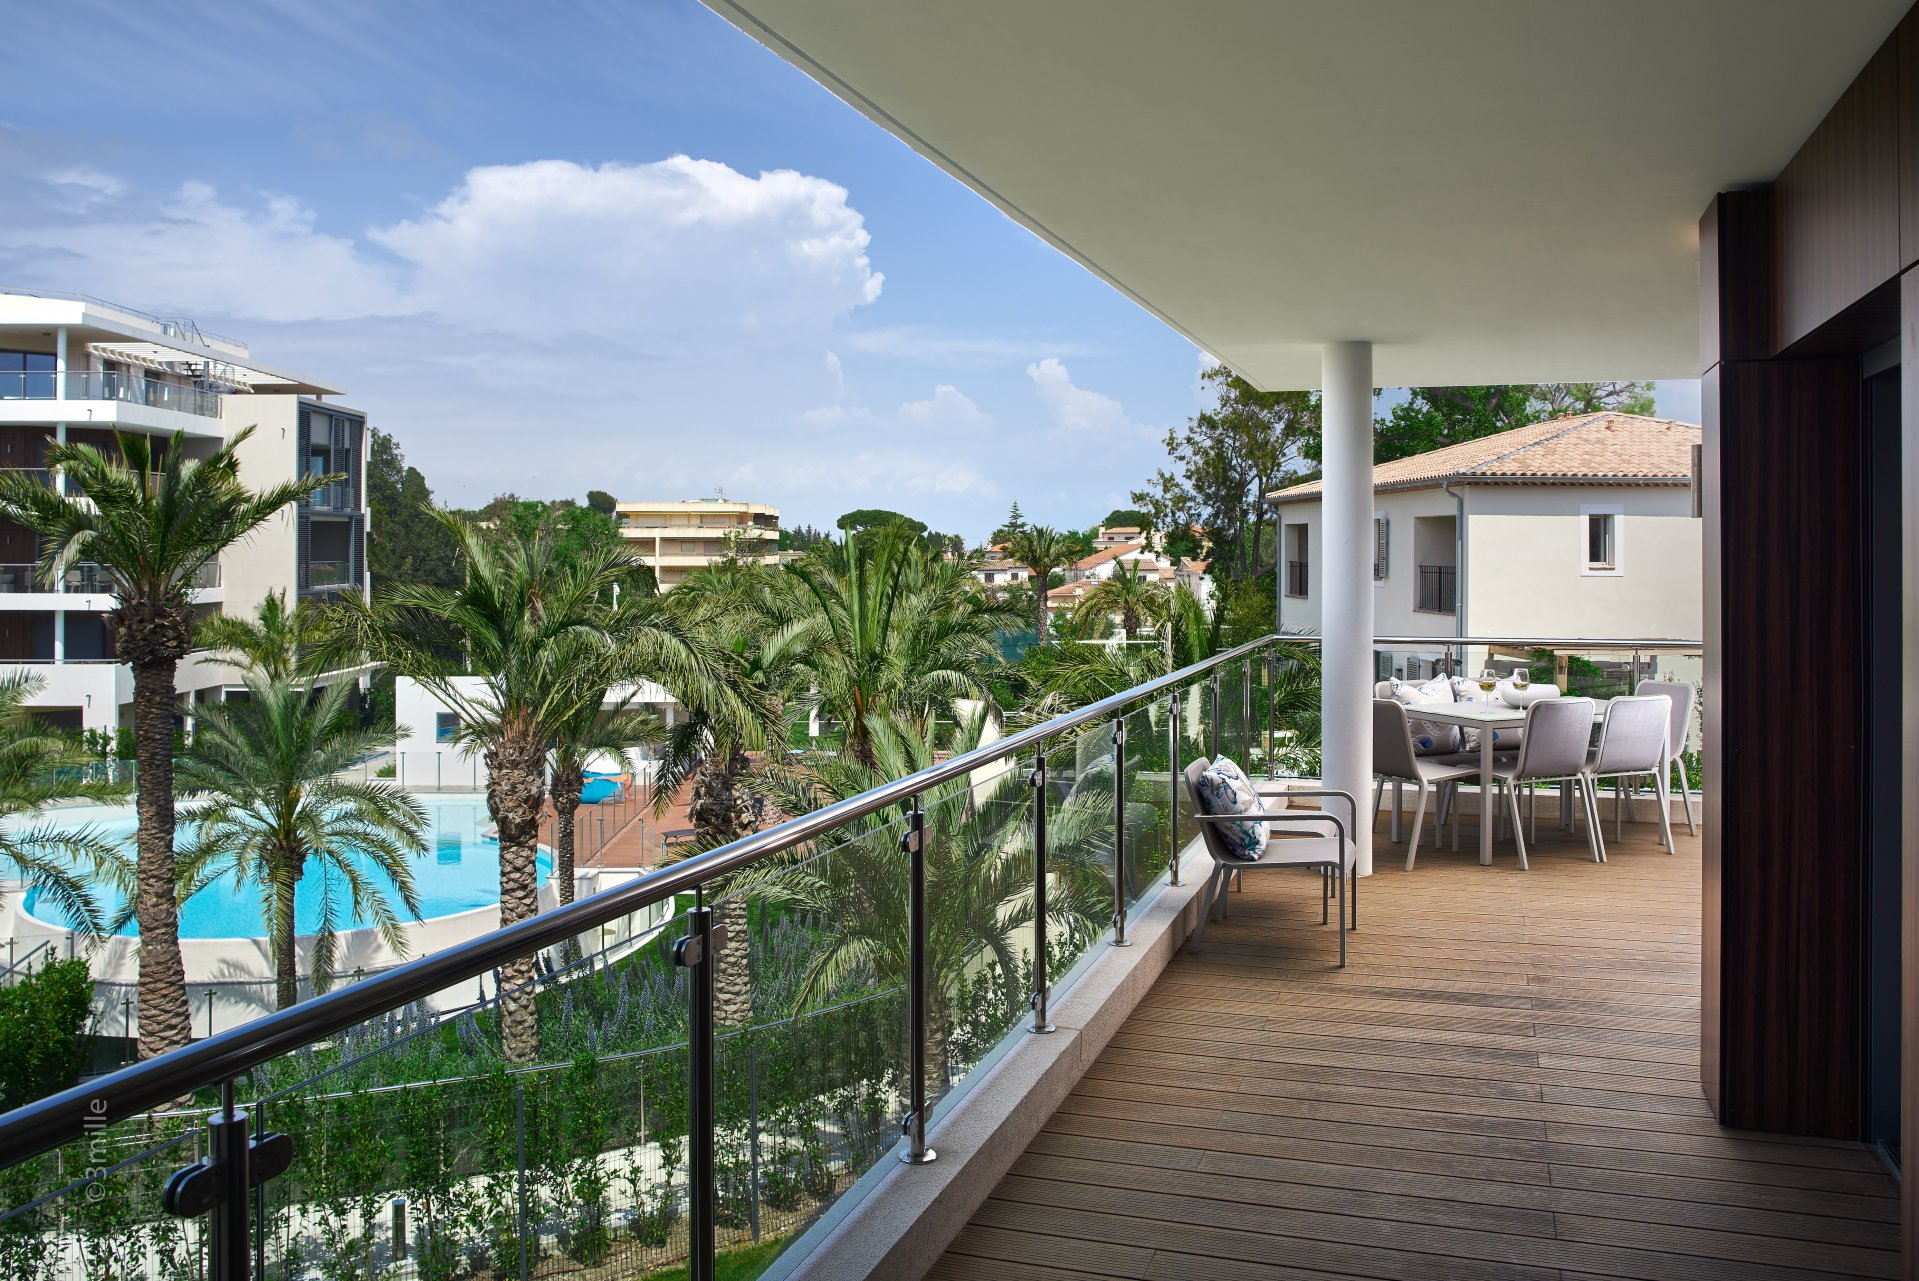 CAP D'ANTIBES -  New 2 bedroom apartement of 93m2 with large terraces in exceptional résidence